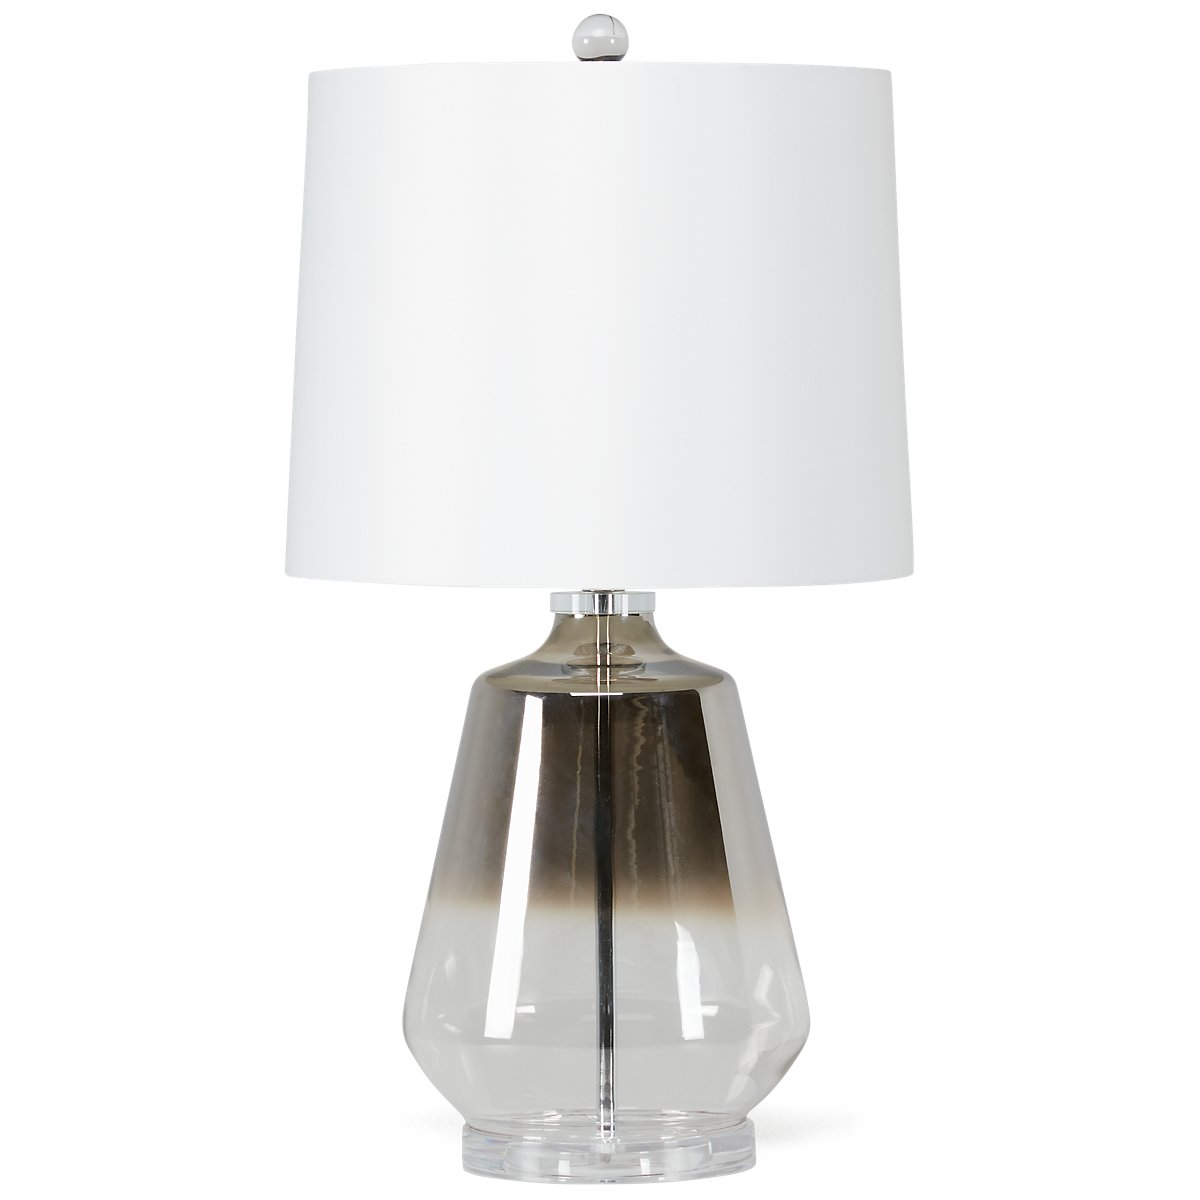 City furniture adara silver table lamp adara silver table lamp geotapseo Image collections